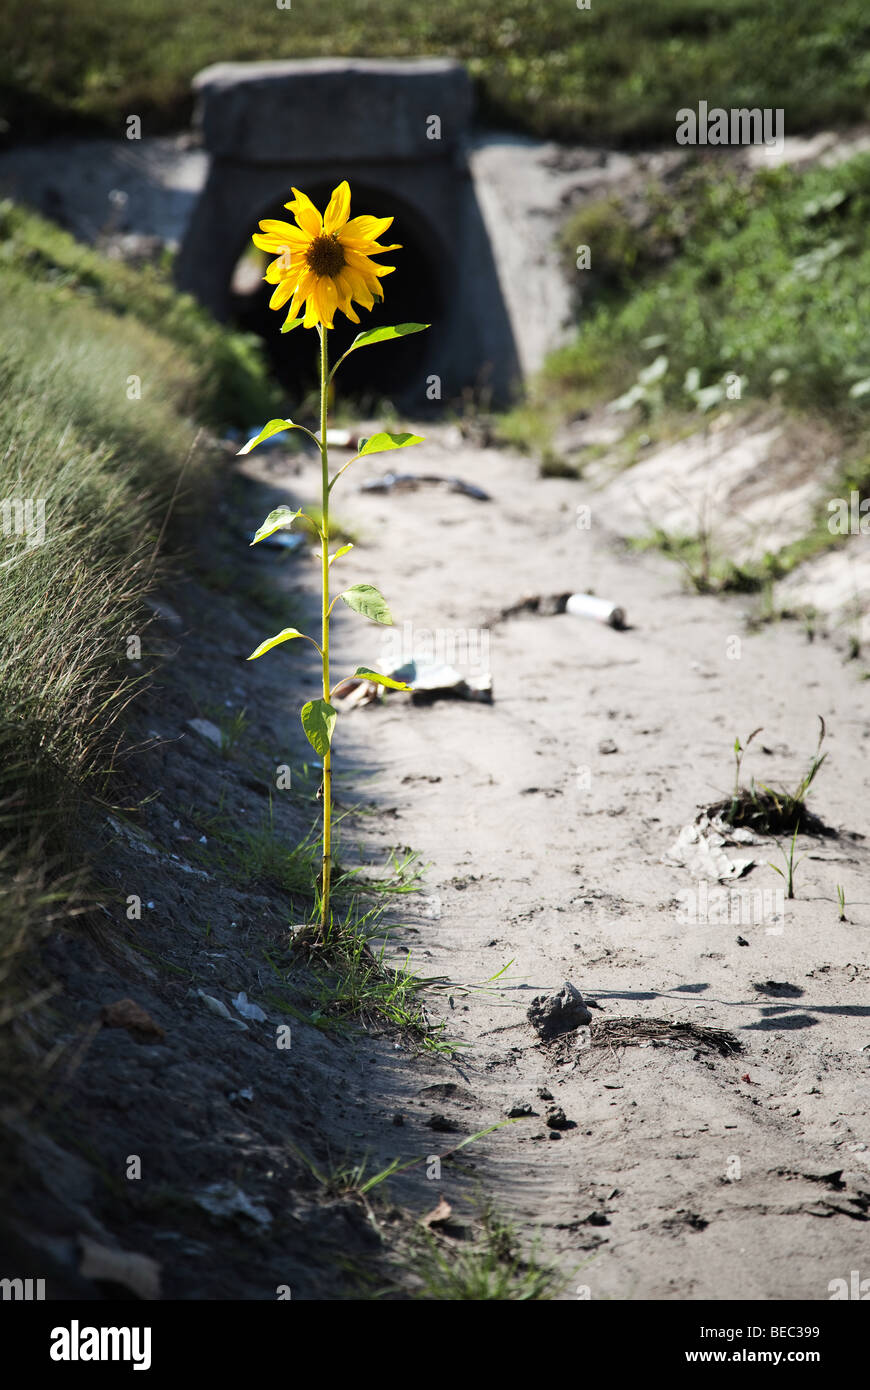 Lonely flower in a gutter with garbage and dirt. Desire for life concept. Stock Photo